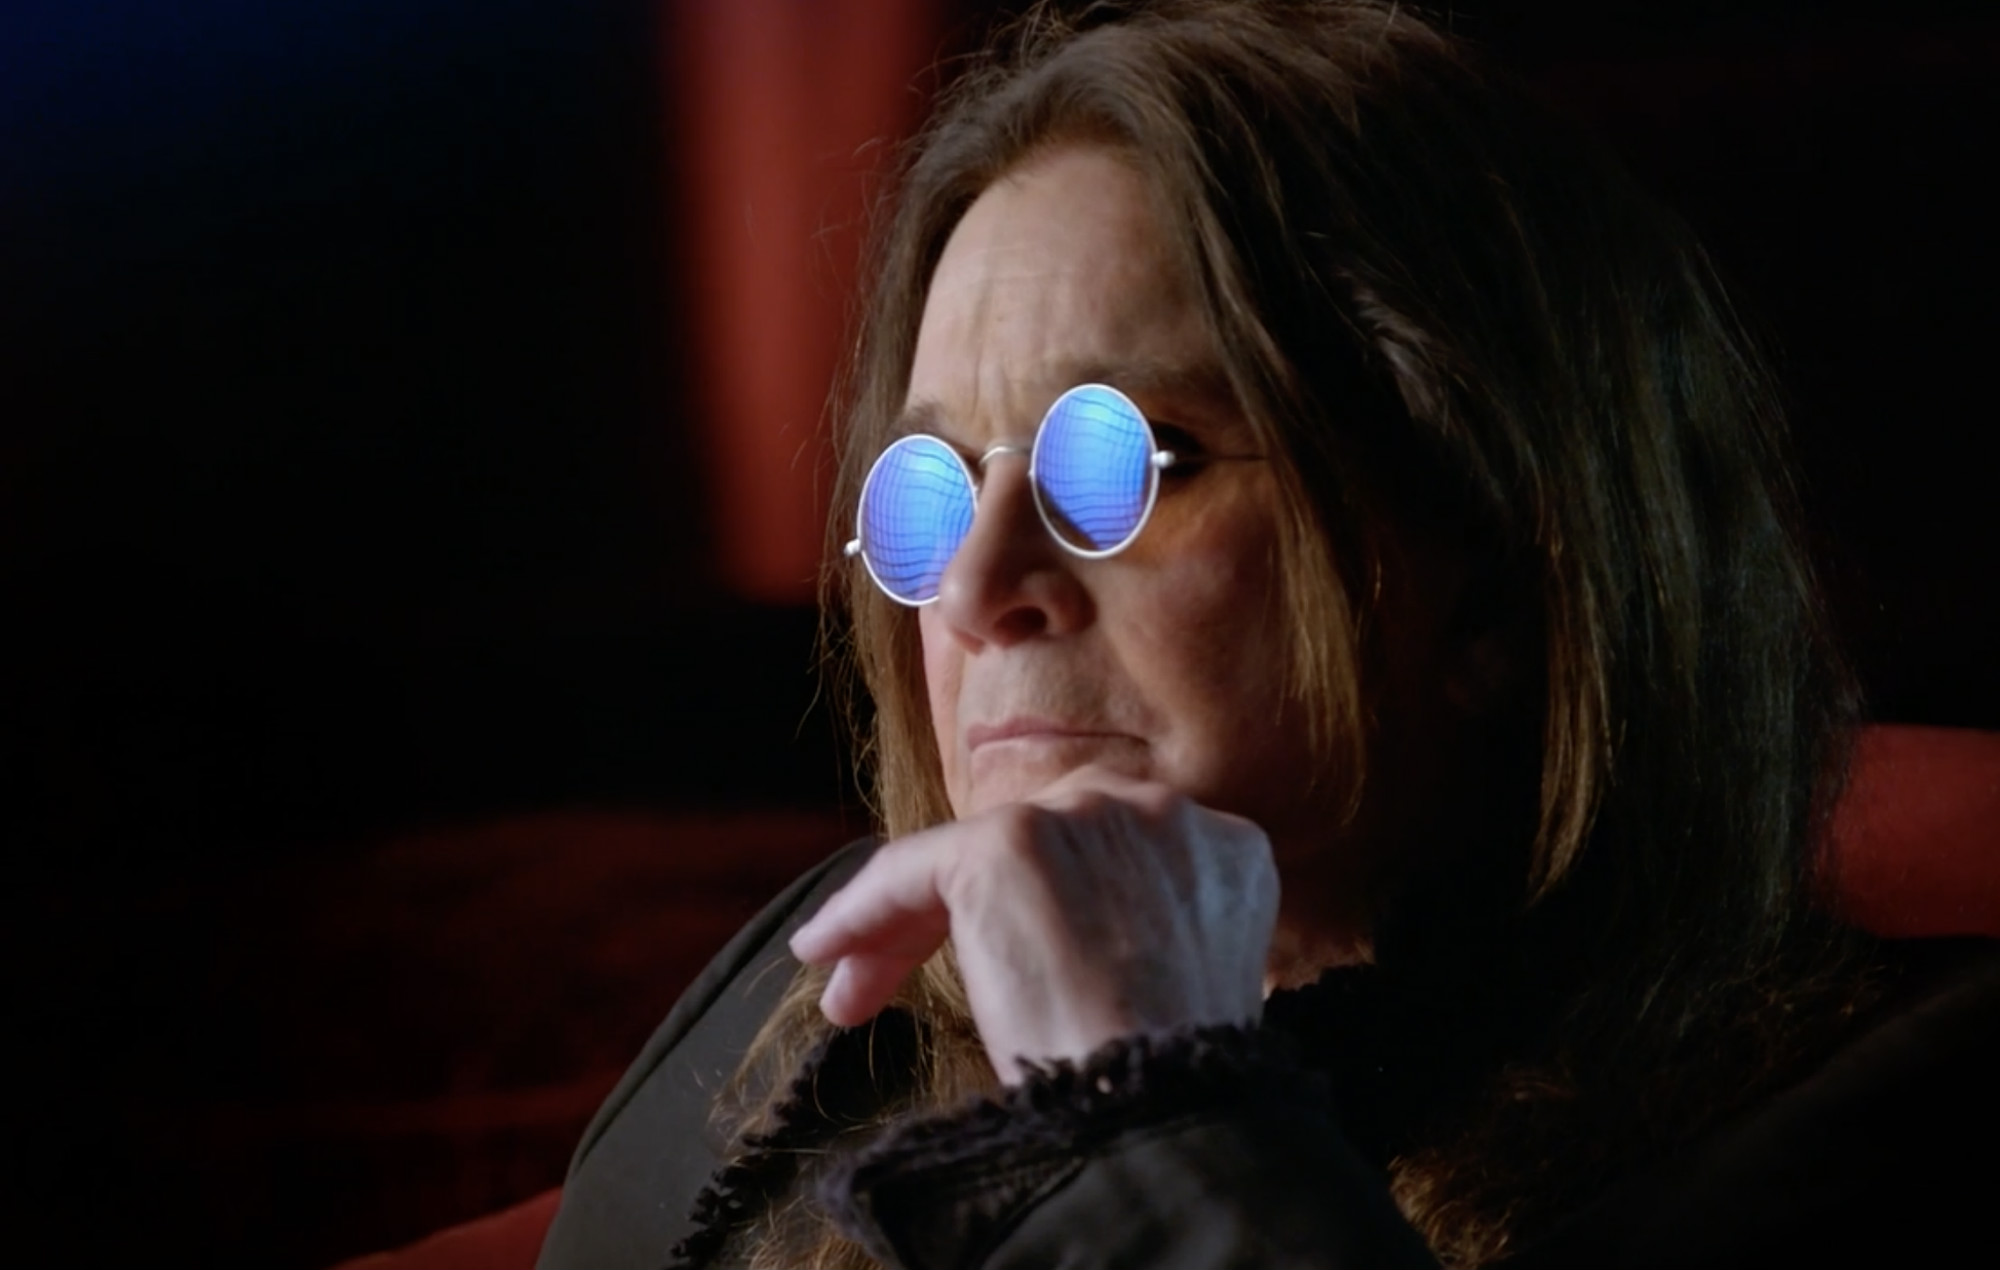 Watch Ozzy Osbourne reflect on raucous career in 'Biography: Nine Lives of Ozzy' documentary trailer